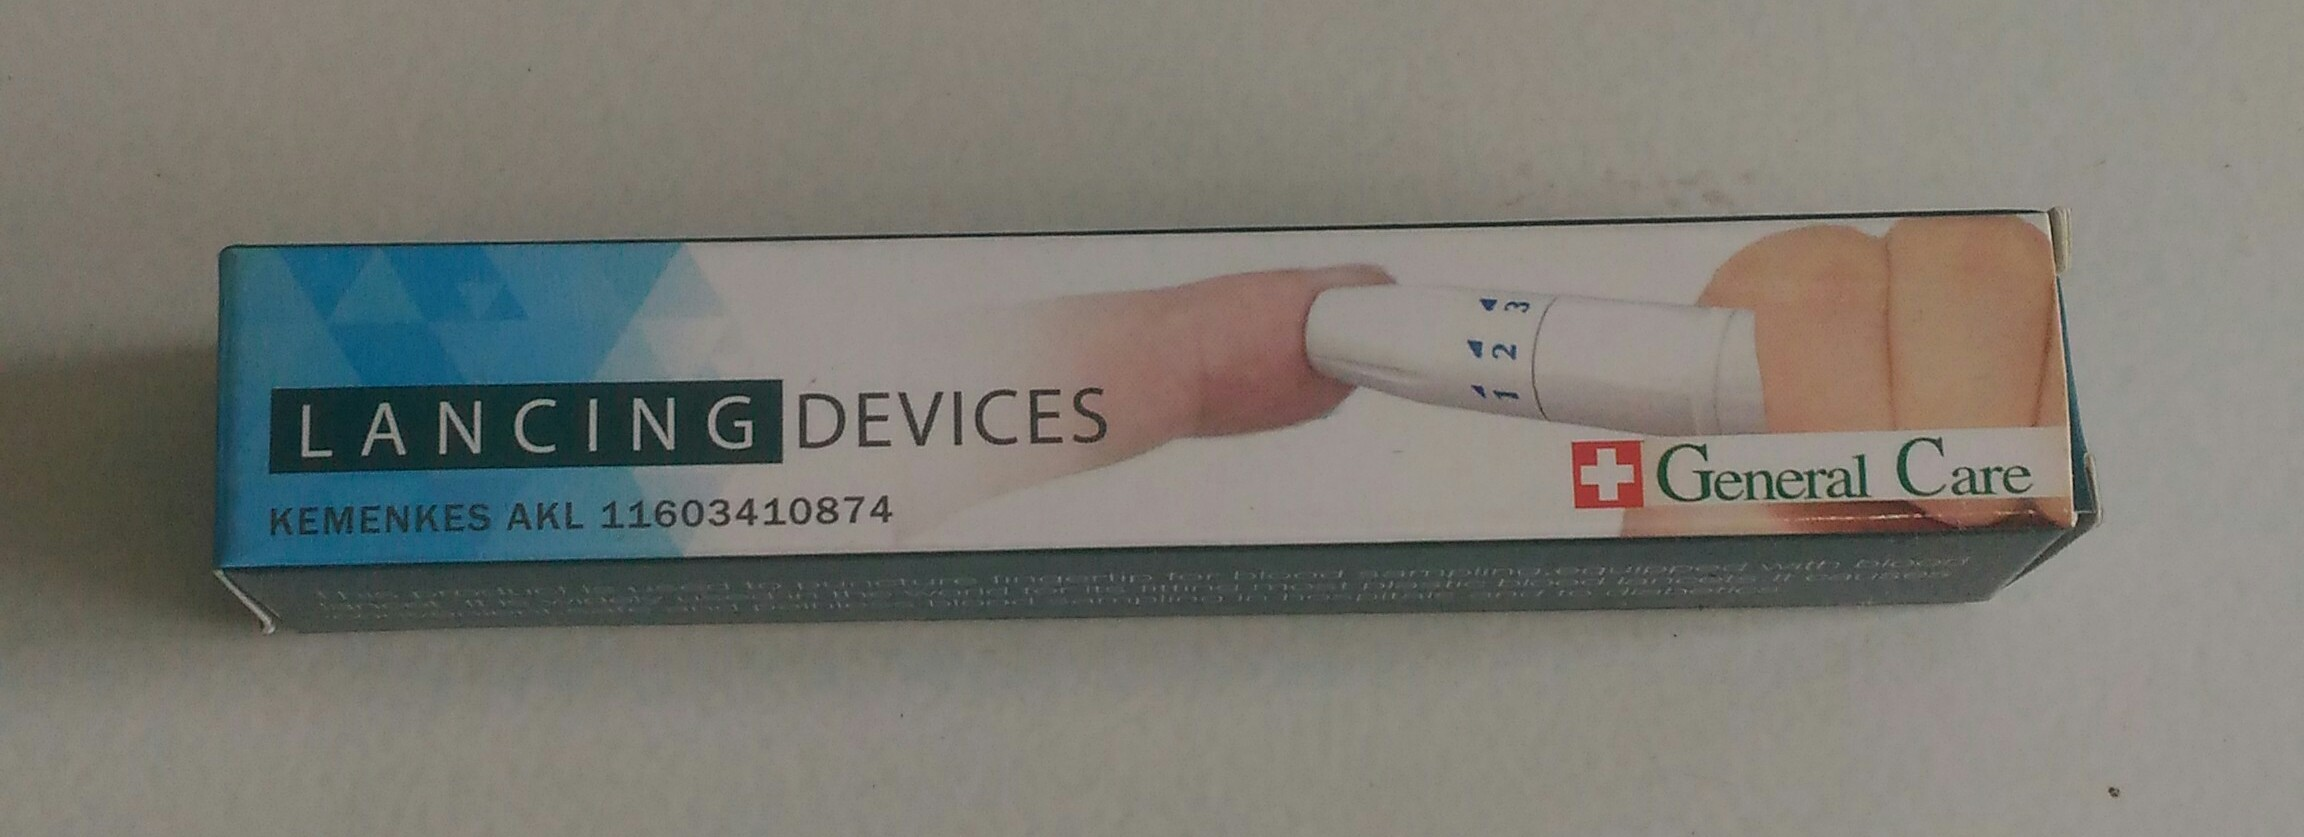 Lancing Devices